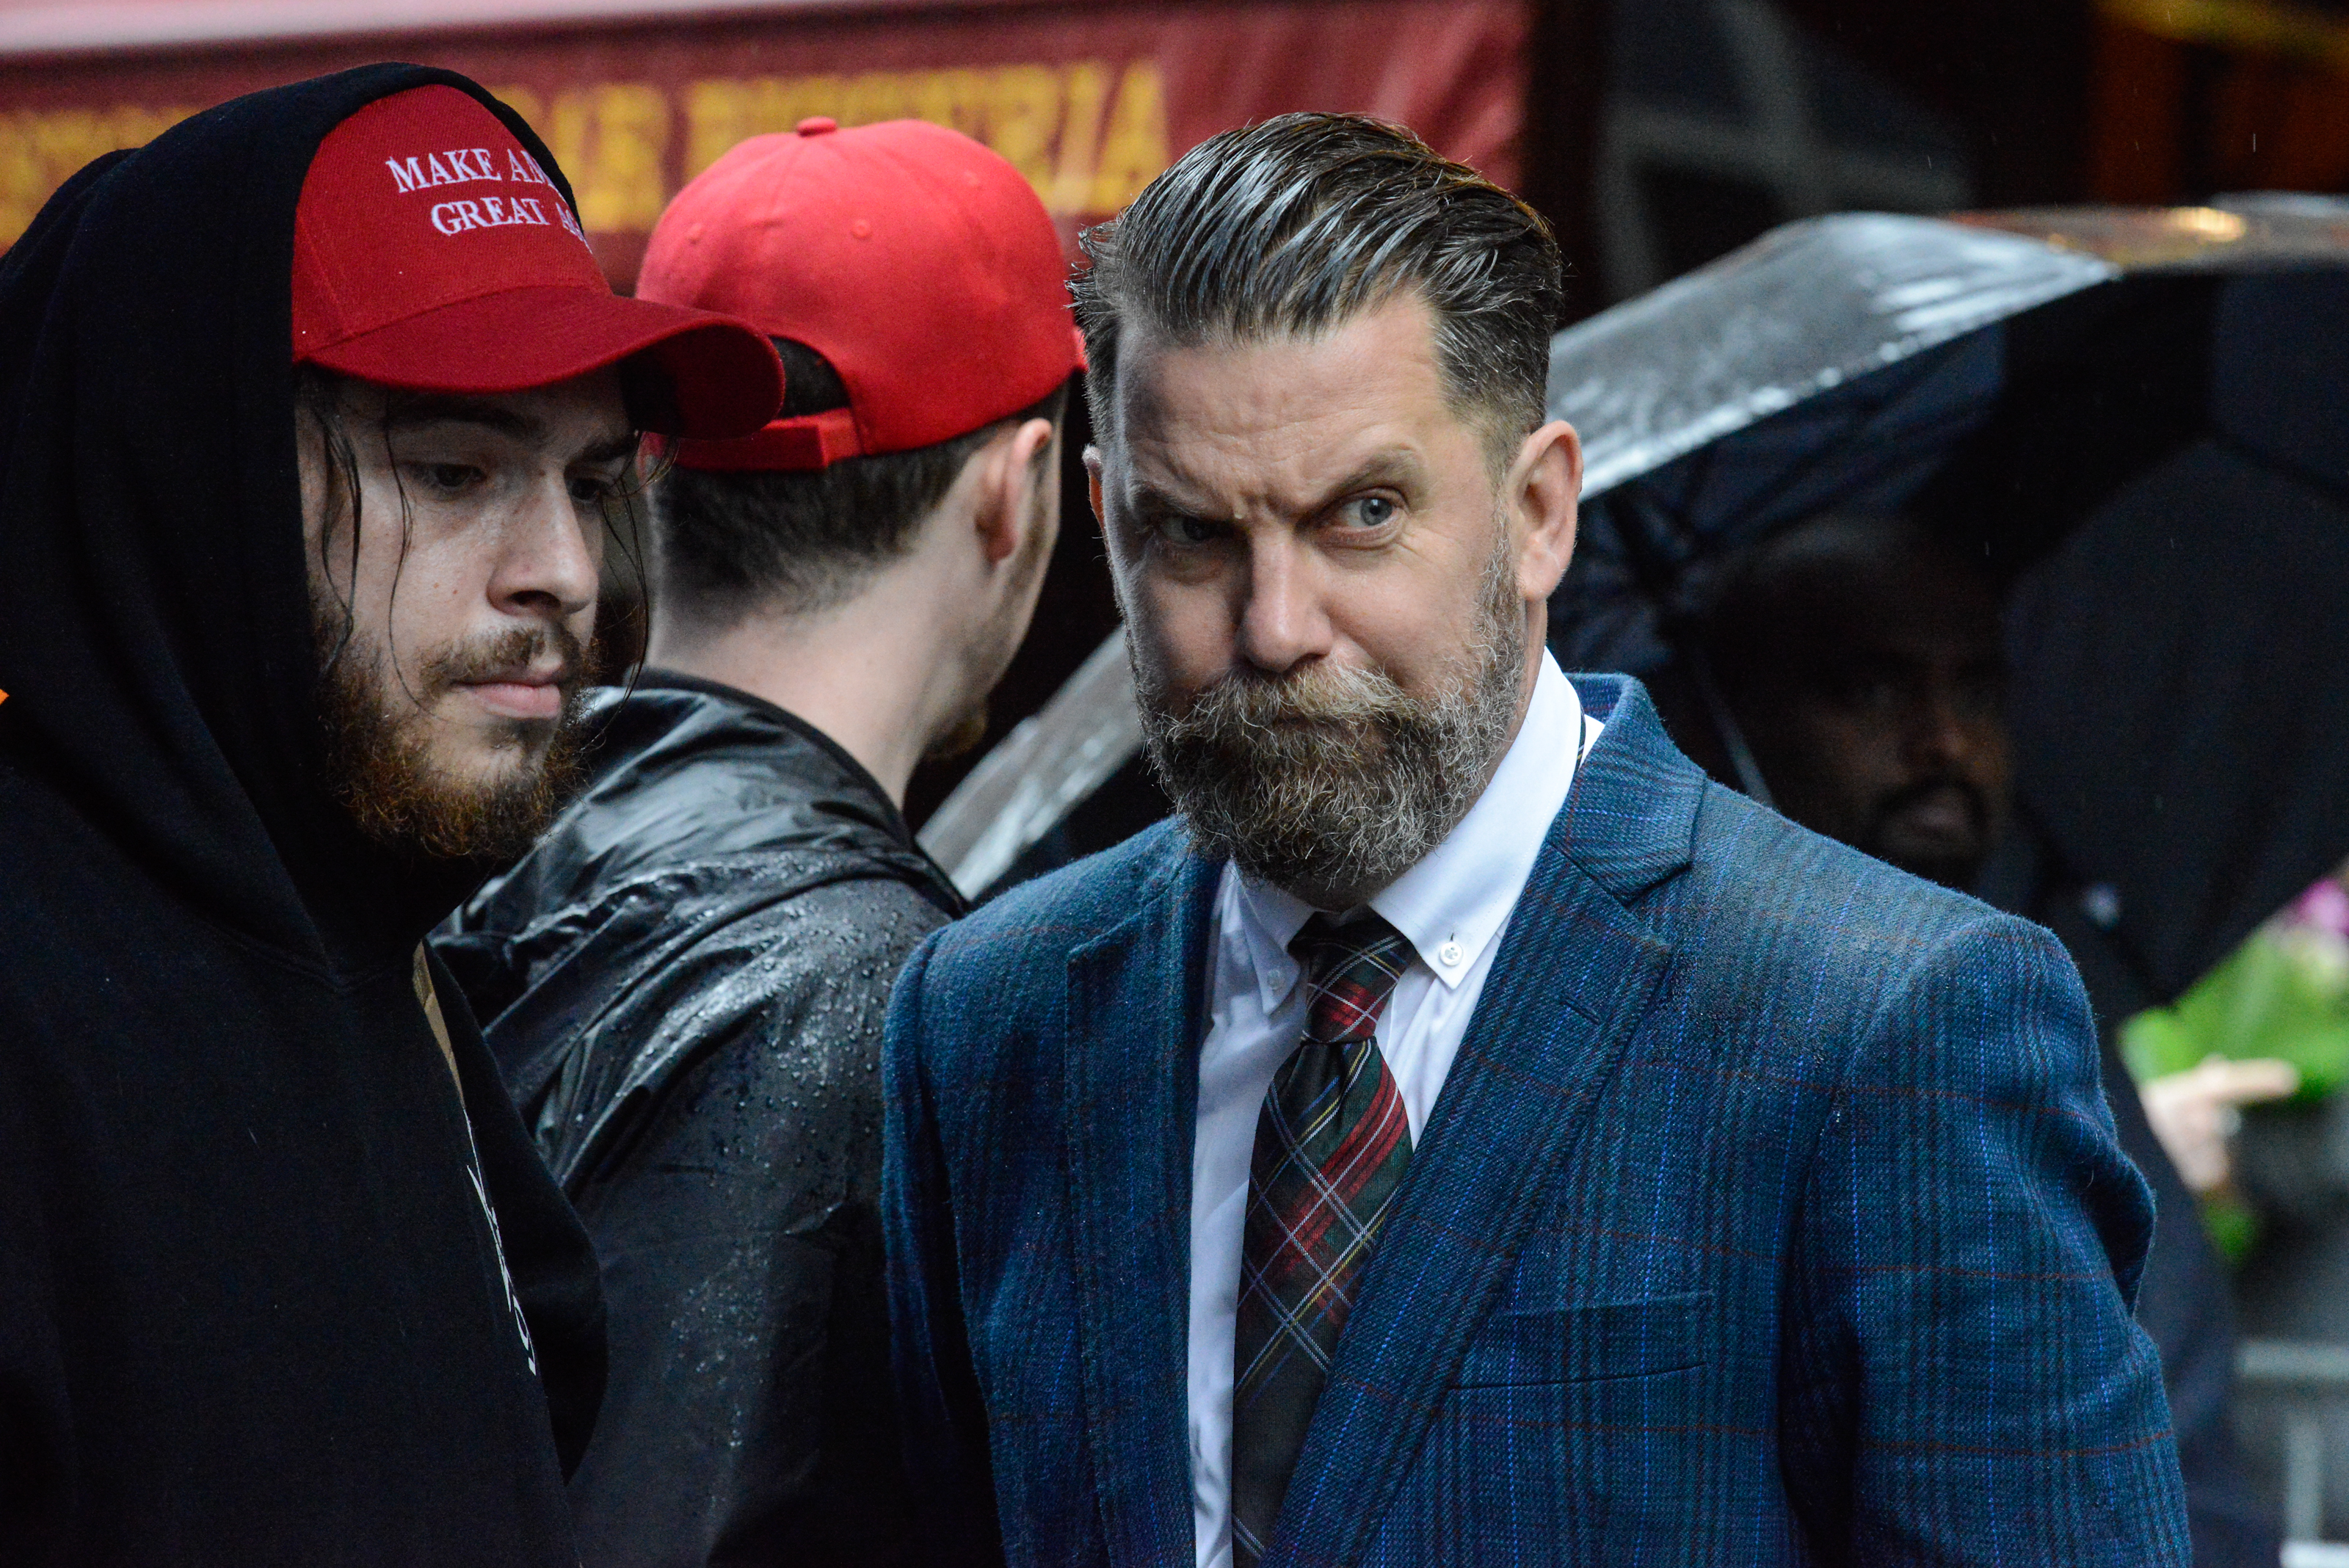 Bad Week For Gavin McInnes: YouTube Account Deleted, Show Cancelled